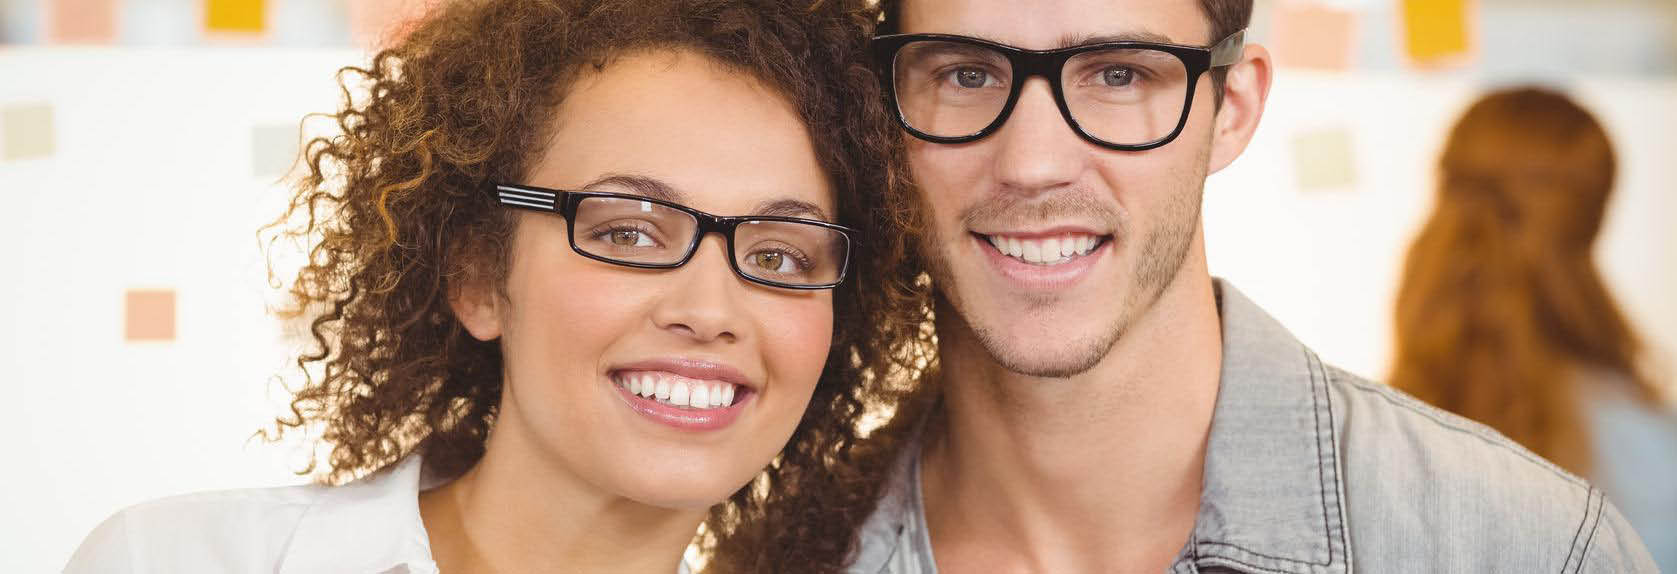 20/20 EyeCare eyeglasses coupons. Professional eye care services in Kentucky and southern Indiana